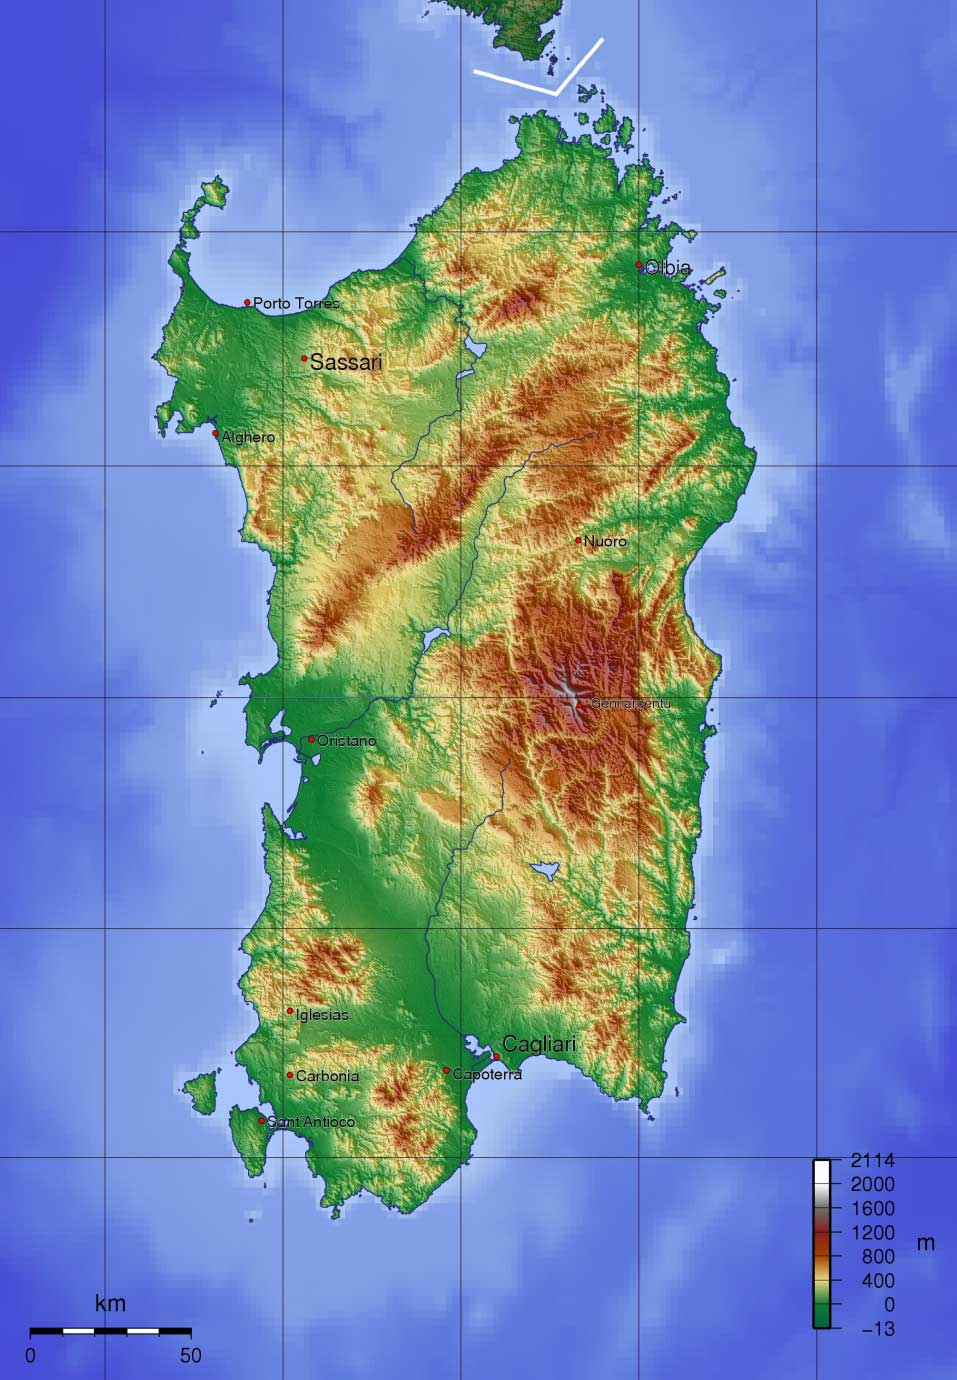 Topographic Map of Sardinia large map